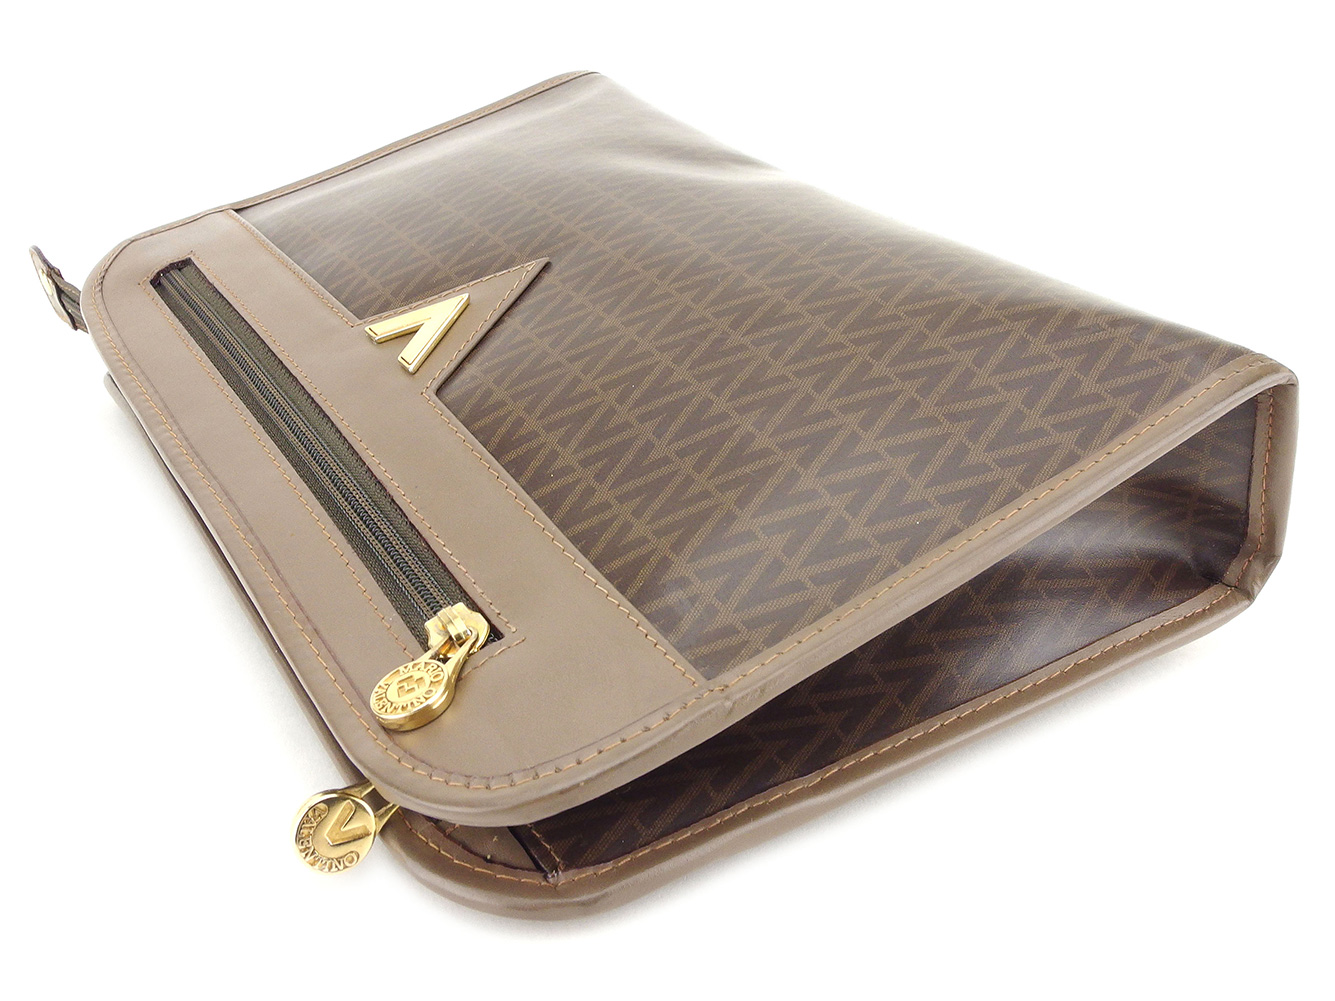 70e25e6156 ... Mario Valentino MARIO VALENTINO clutch bag second bag Lady's men V Mark  Brown beige gold PVC ...